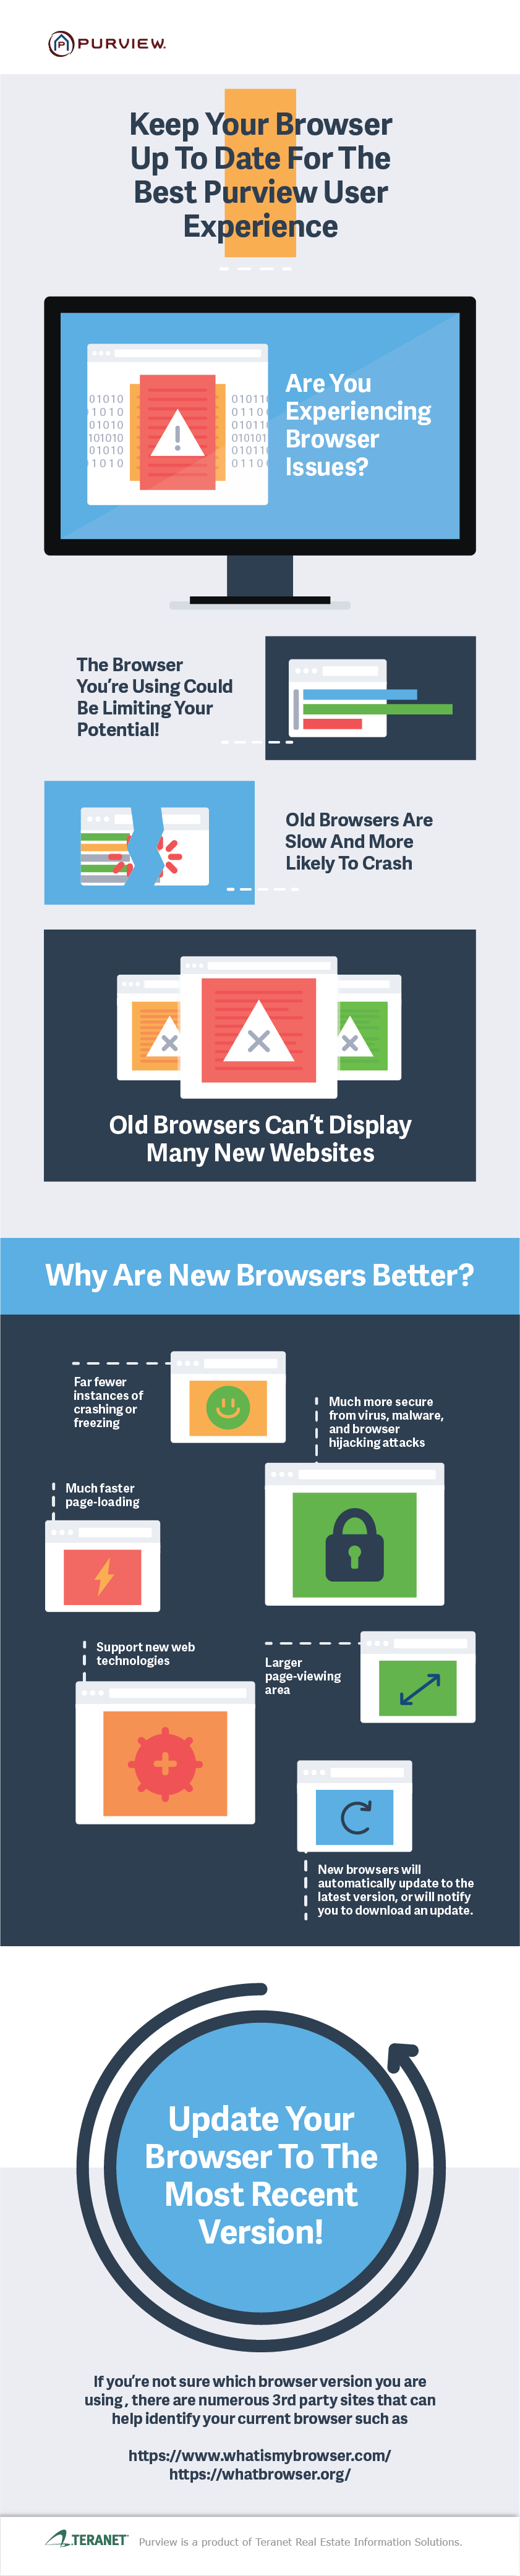 004_Purview-Browser_Infographic_R7